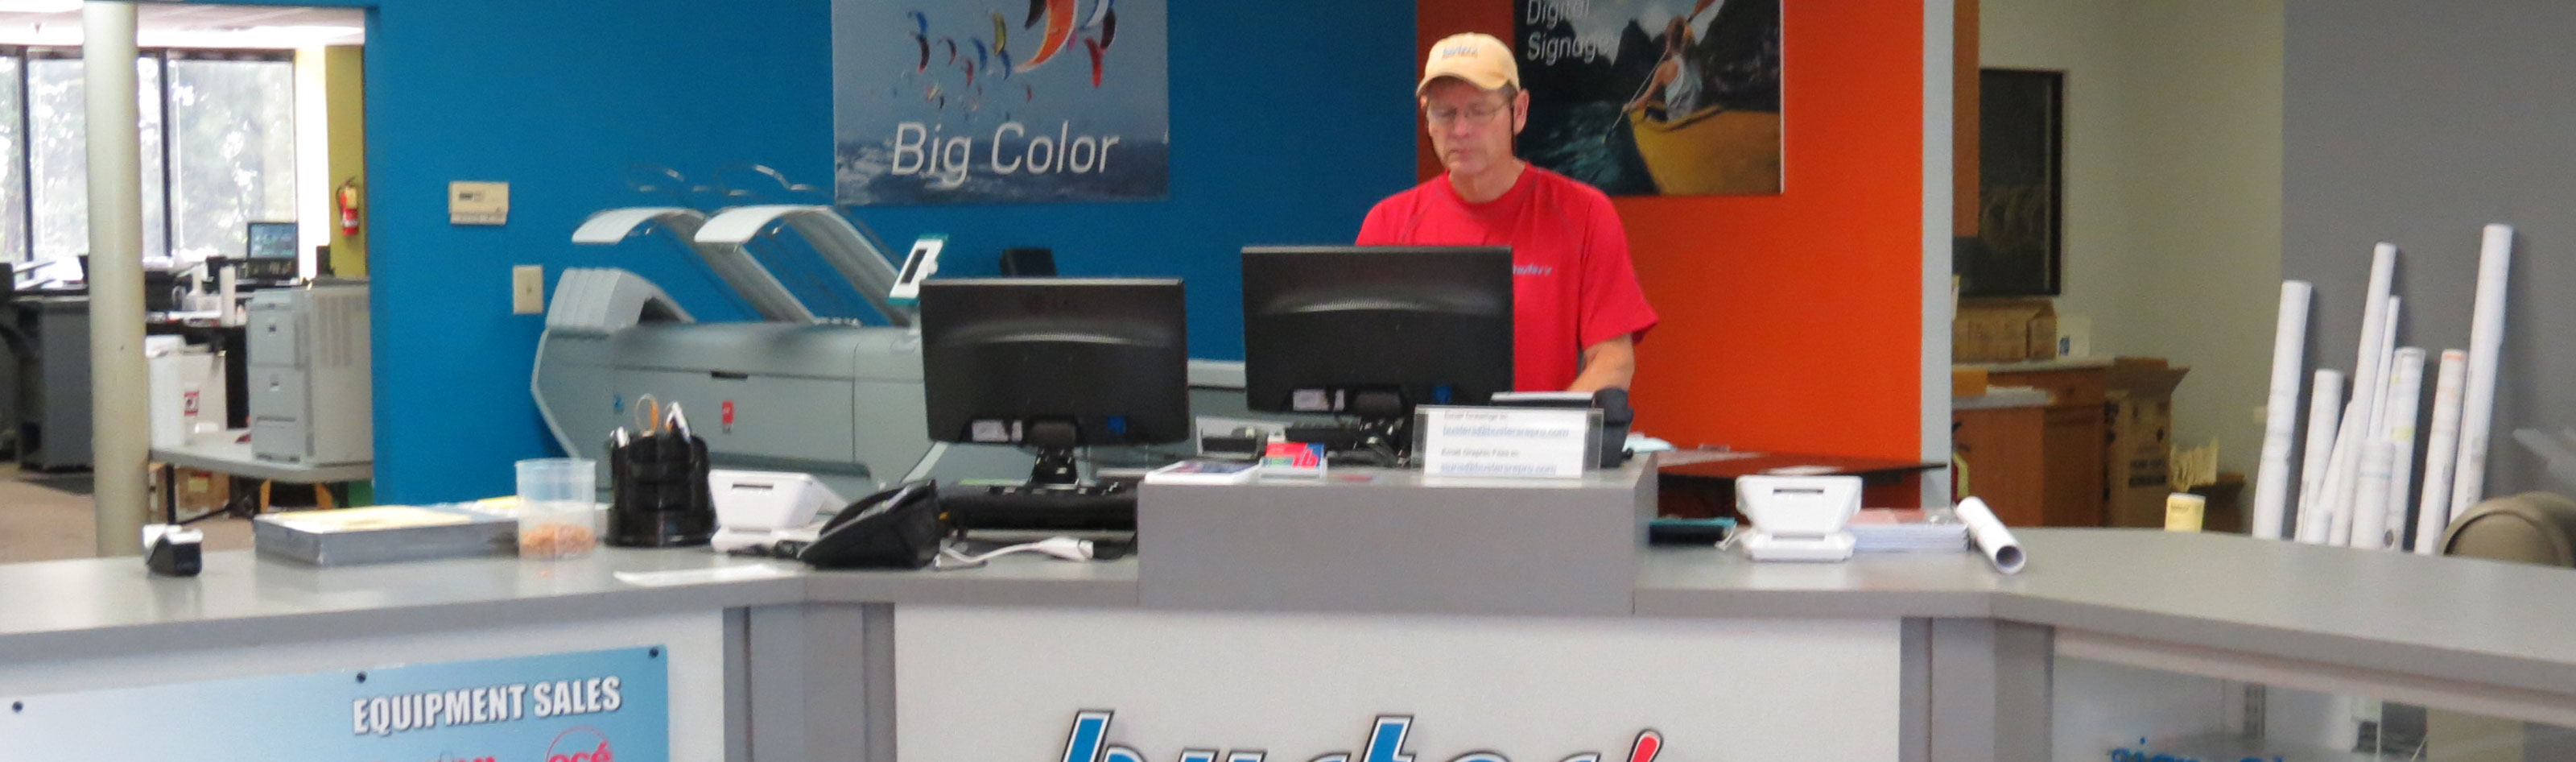 Busters reprographics printing graphics blueprints signs click to email malvernweather Image collections